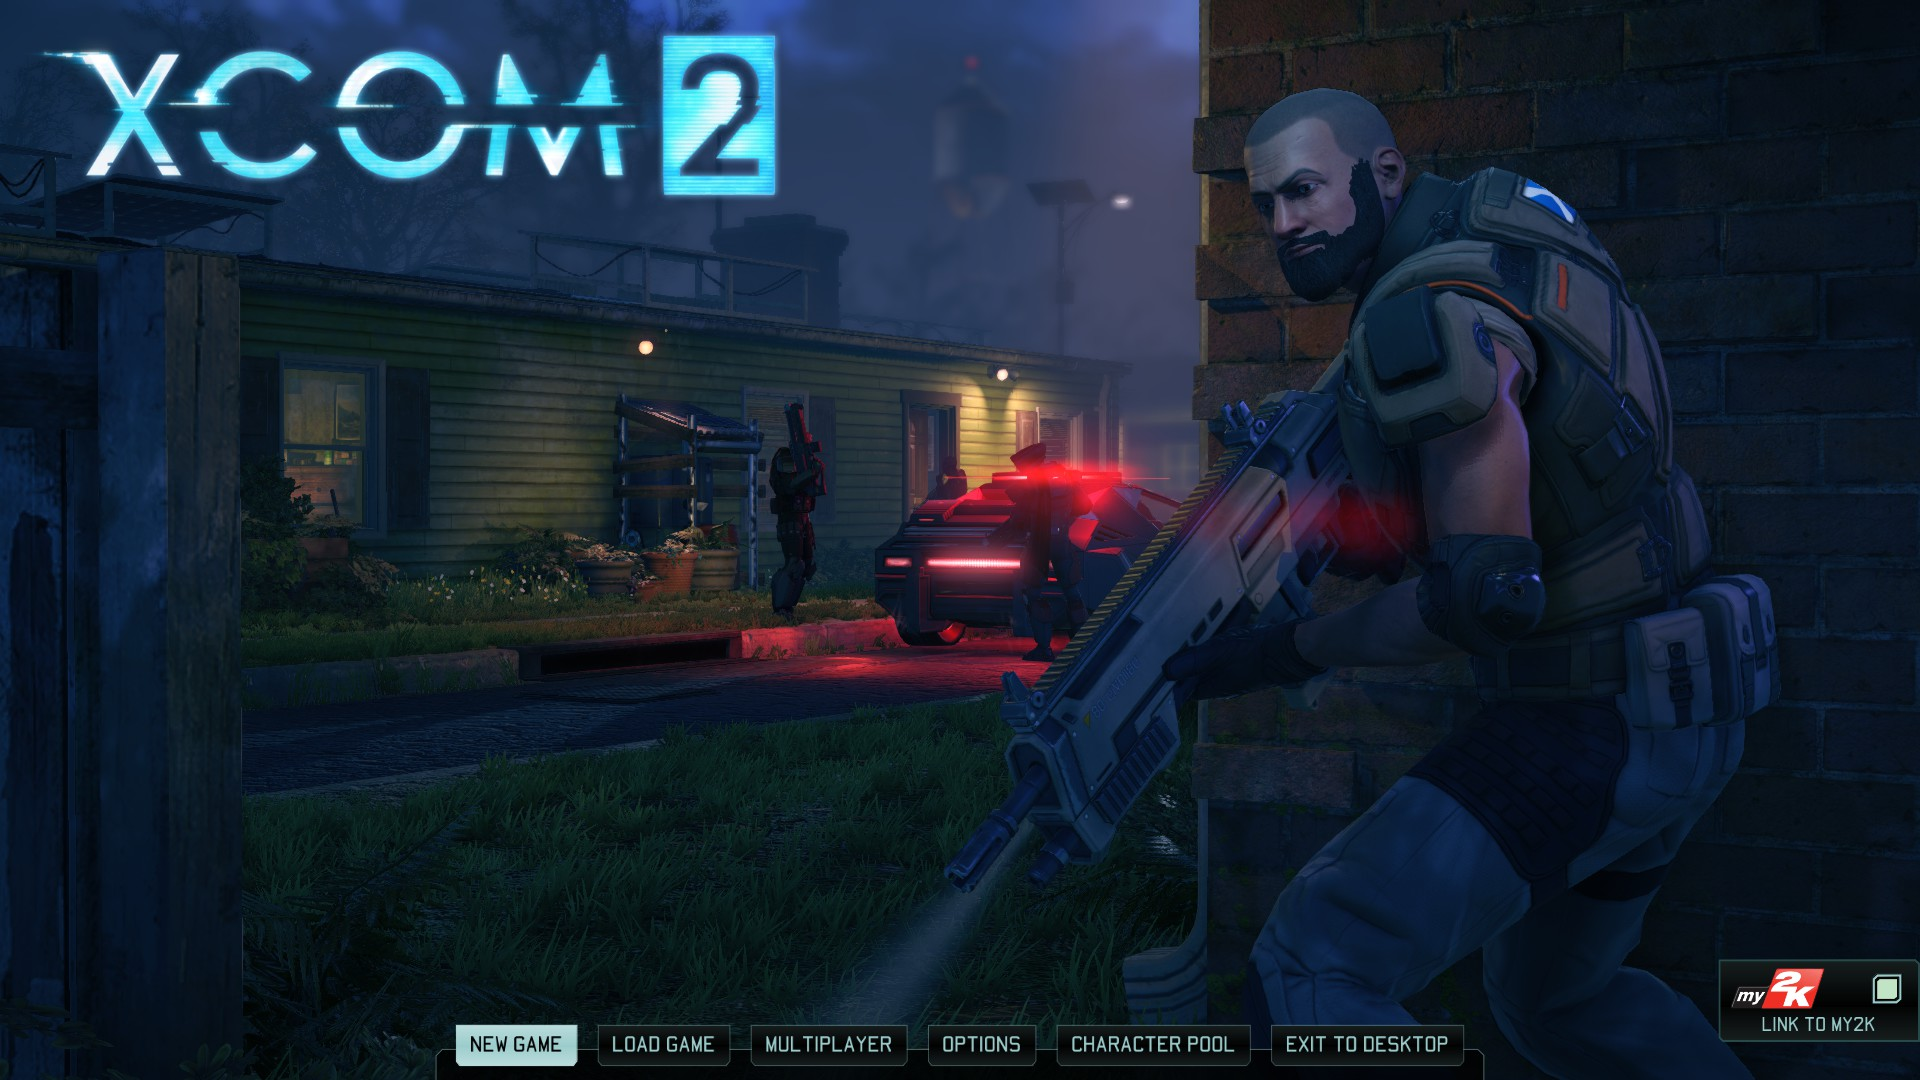 Steam Community :: Guide :: XCOM 2 with great visuals and